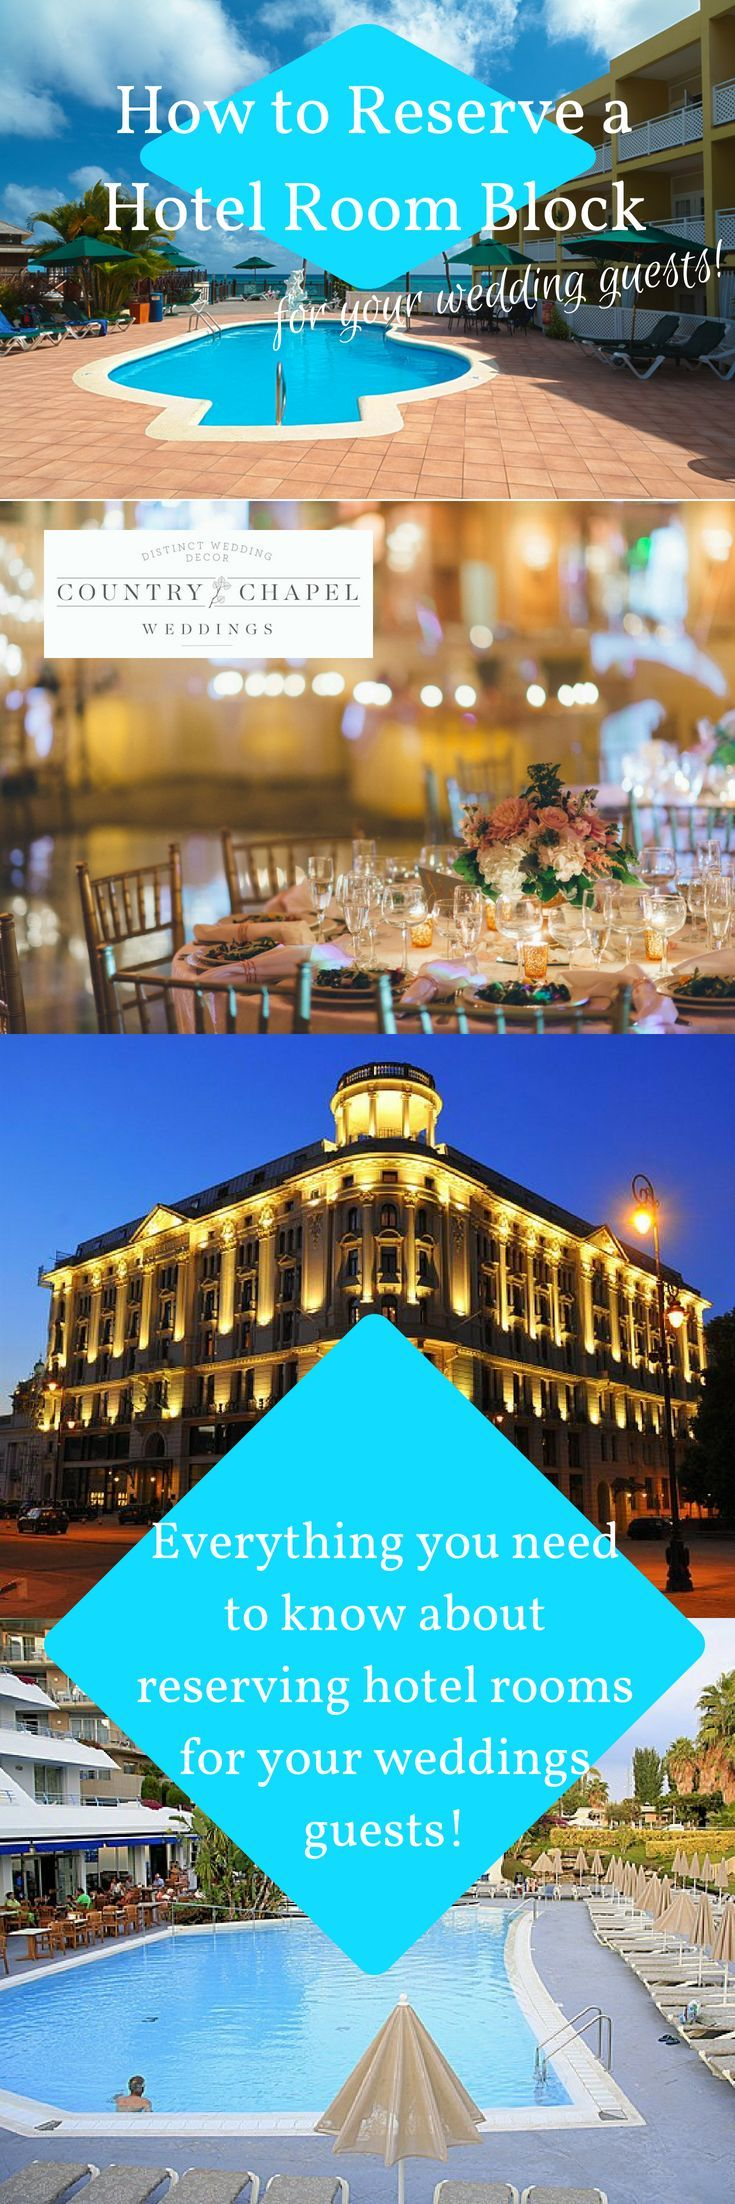 How To Reserve A Hotel Room Block For Wedding Guests Weddings And